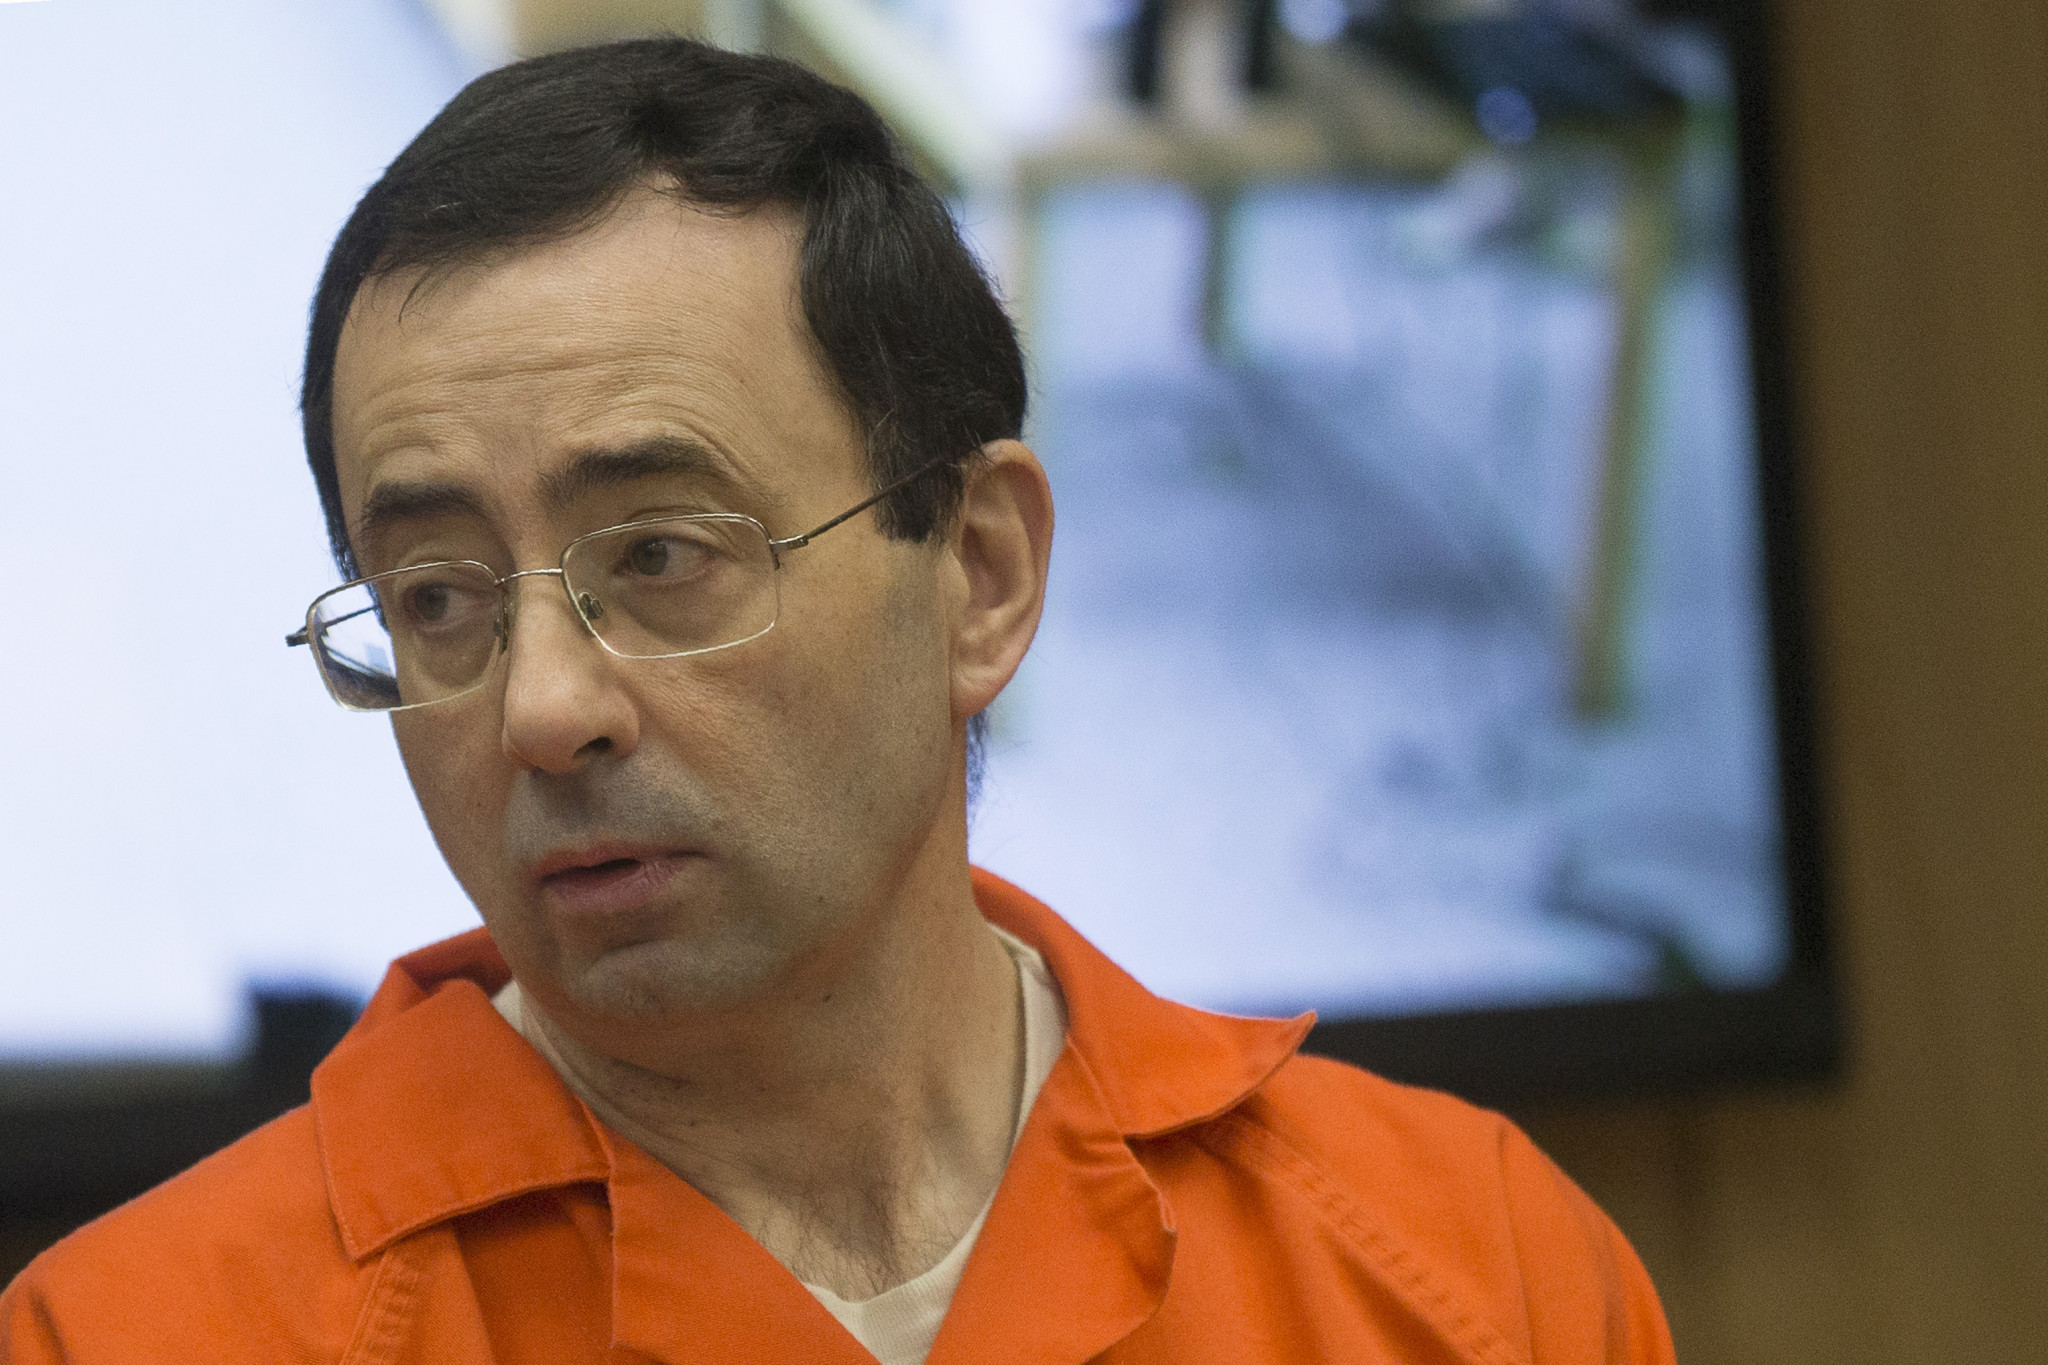 The Philadelphia Indemnity Insurance Company wants a judge to determine that it is not accountable for multiple lawsuits filed in recent years against the USOC, including those that have come in the wake of the Larry Nassar scandal ©Getty Images